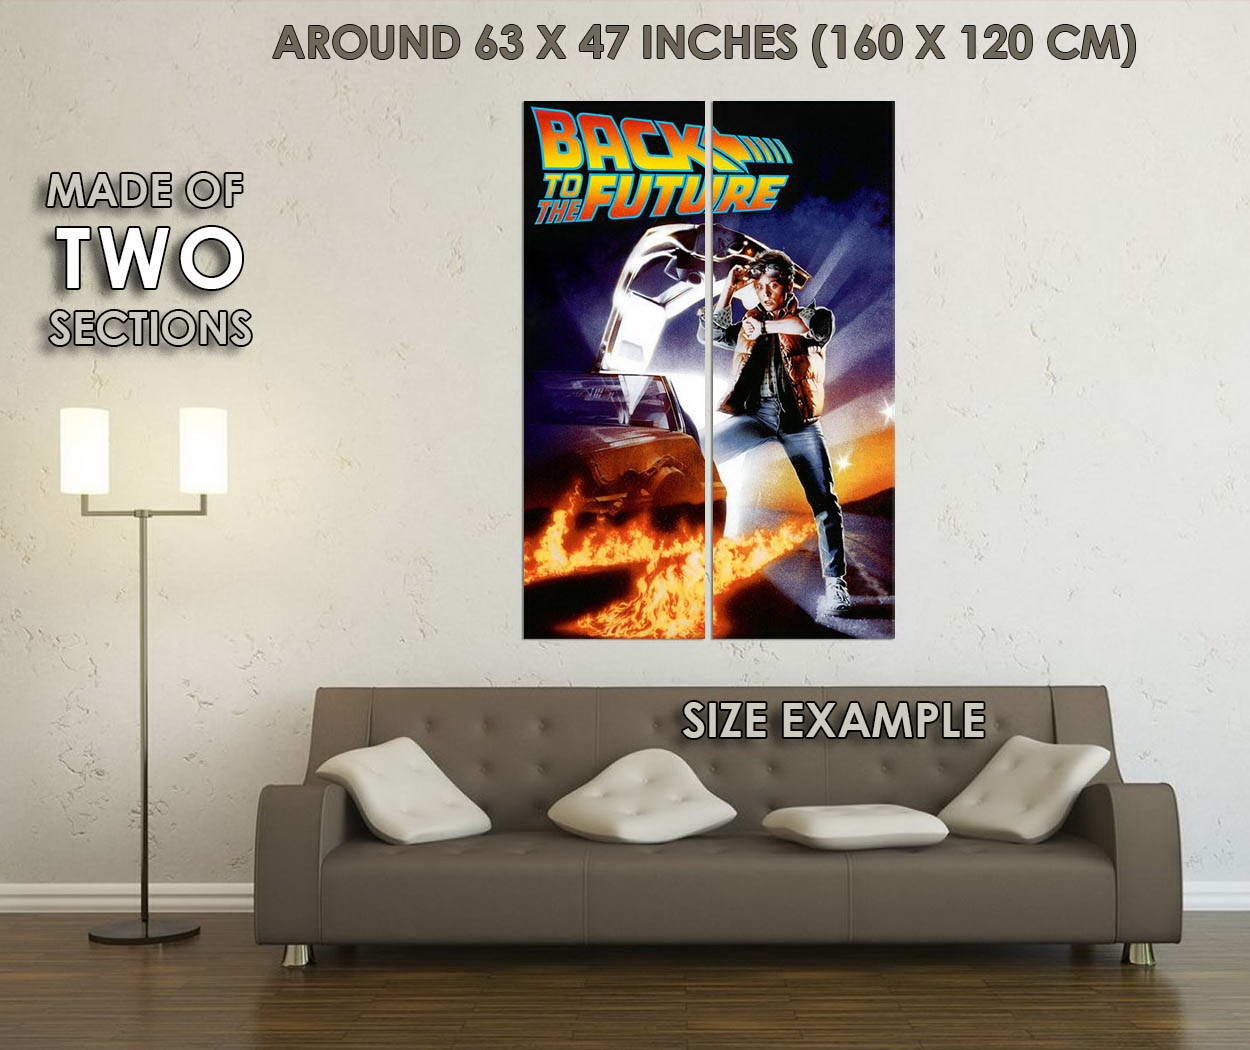 10822-Back-To-The-Future-1-Classic-Movie-LAMINATED-POSTER-CA thumbnail 6